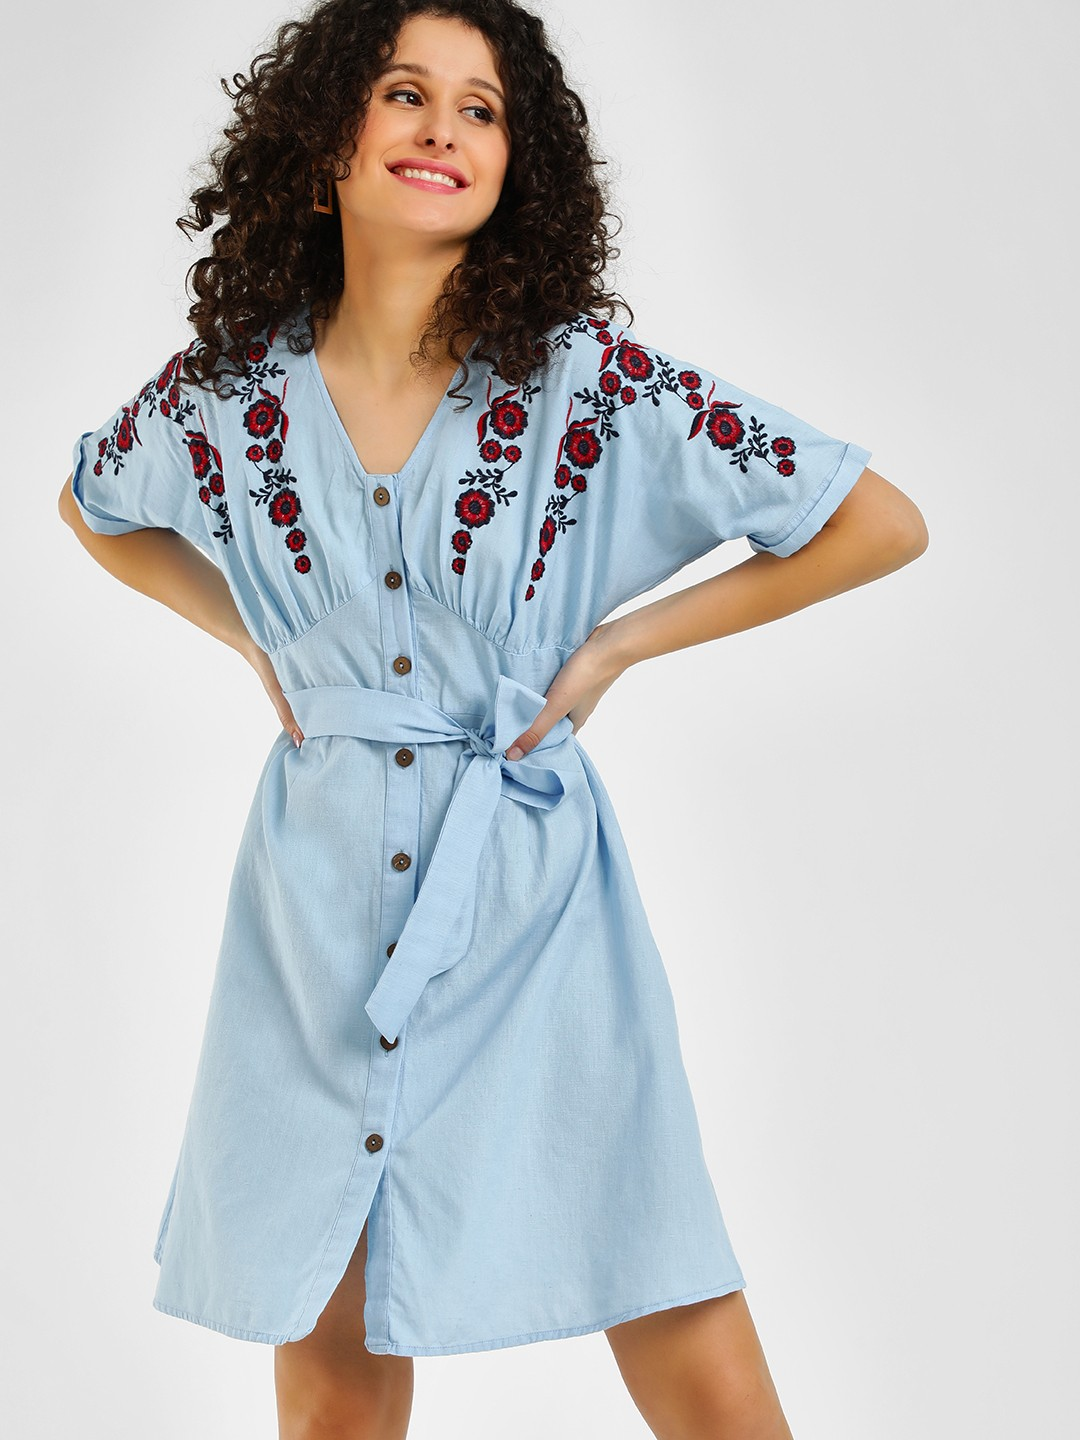 Rena Love Powder Blue Button Detail Embroidered Shift Dress 1